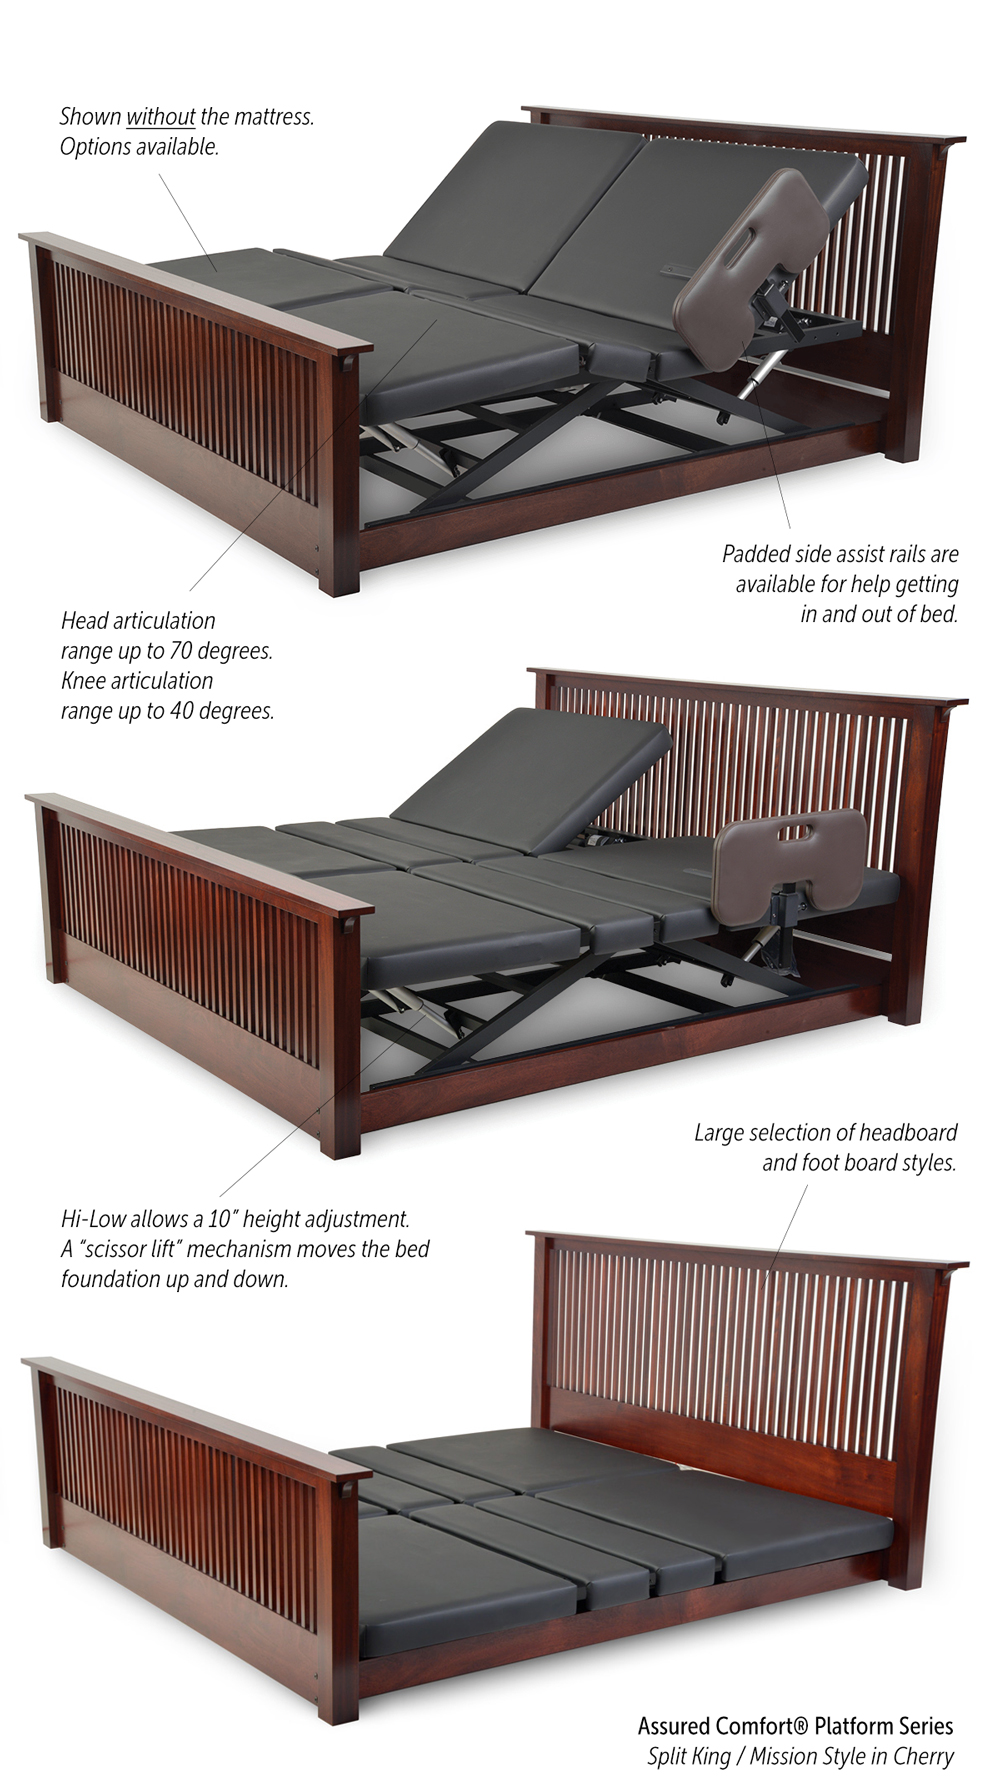 Assured Comfort Hi-Low Adjustable Beds - Platform Series - Split King